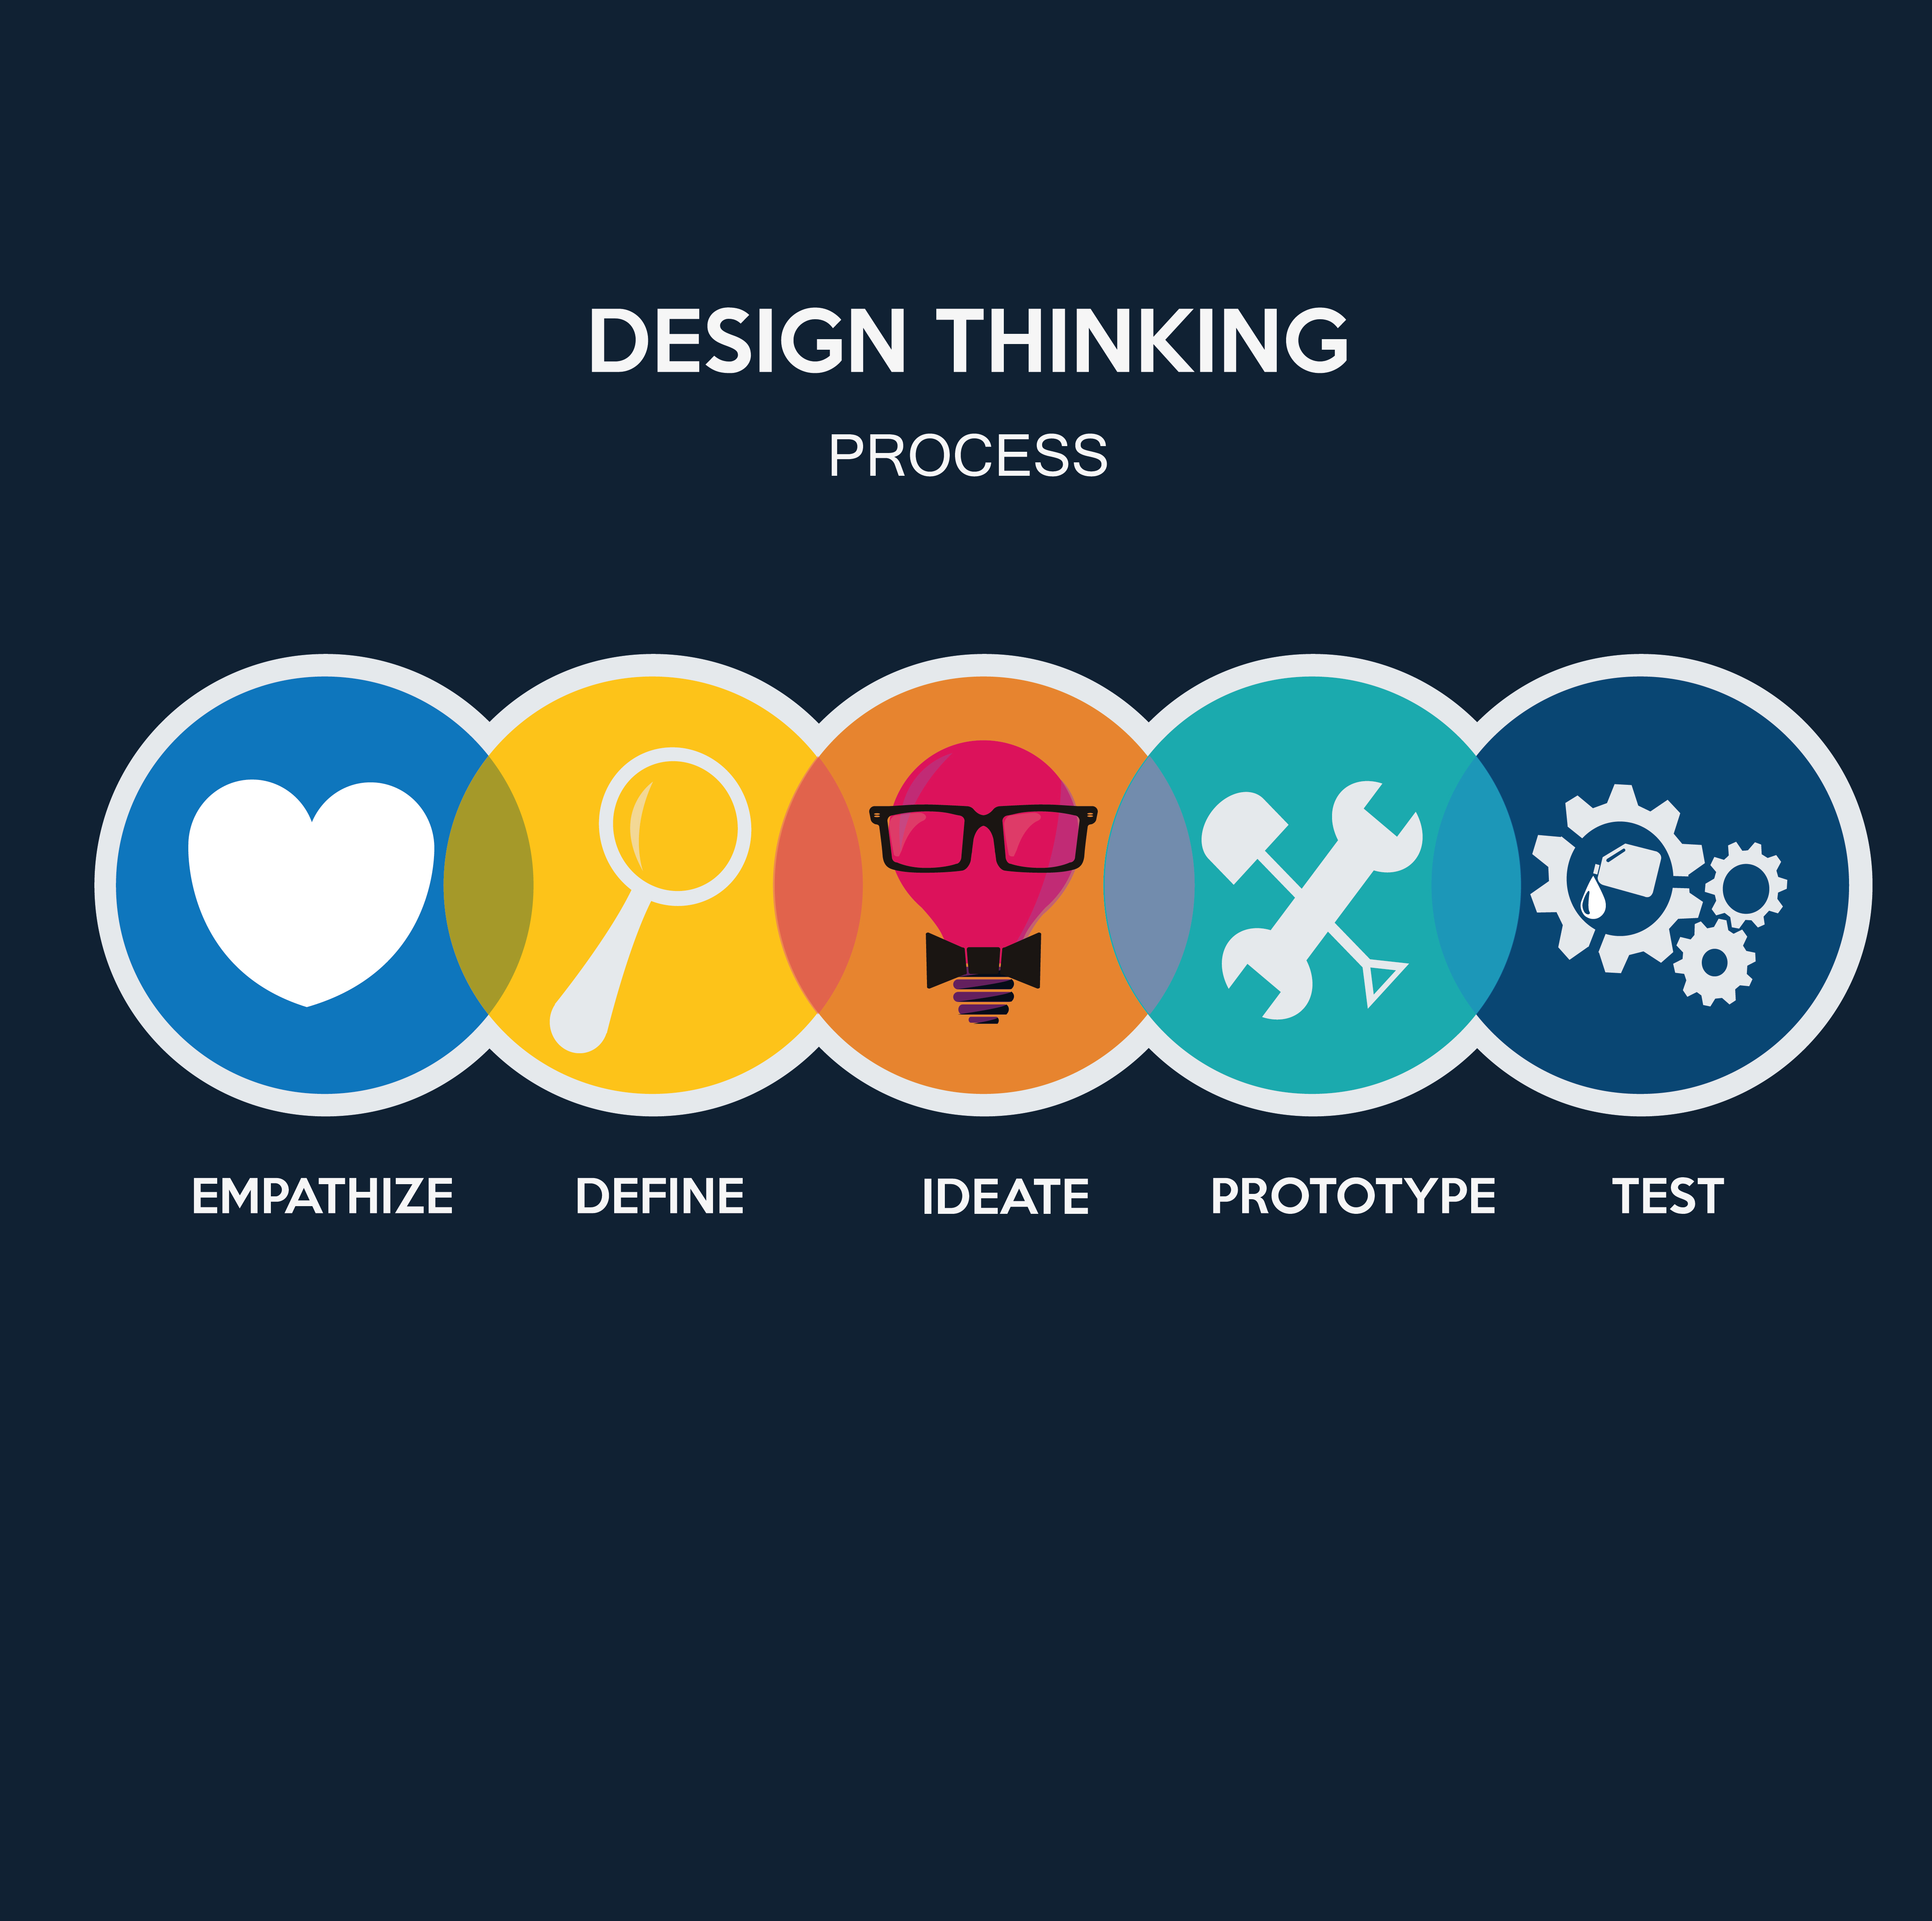 check the post:Accelerating Digital Transformation with Design Thinking for a description of the image